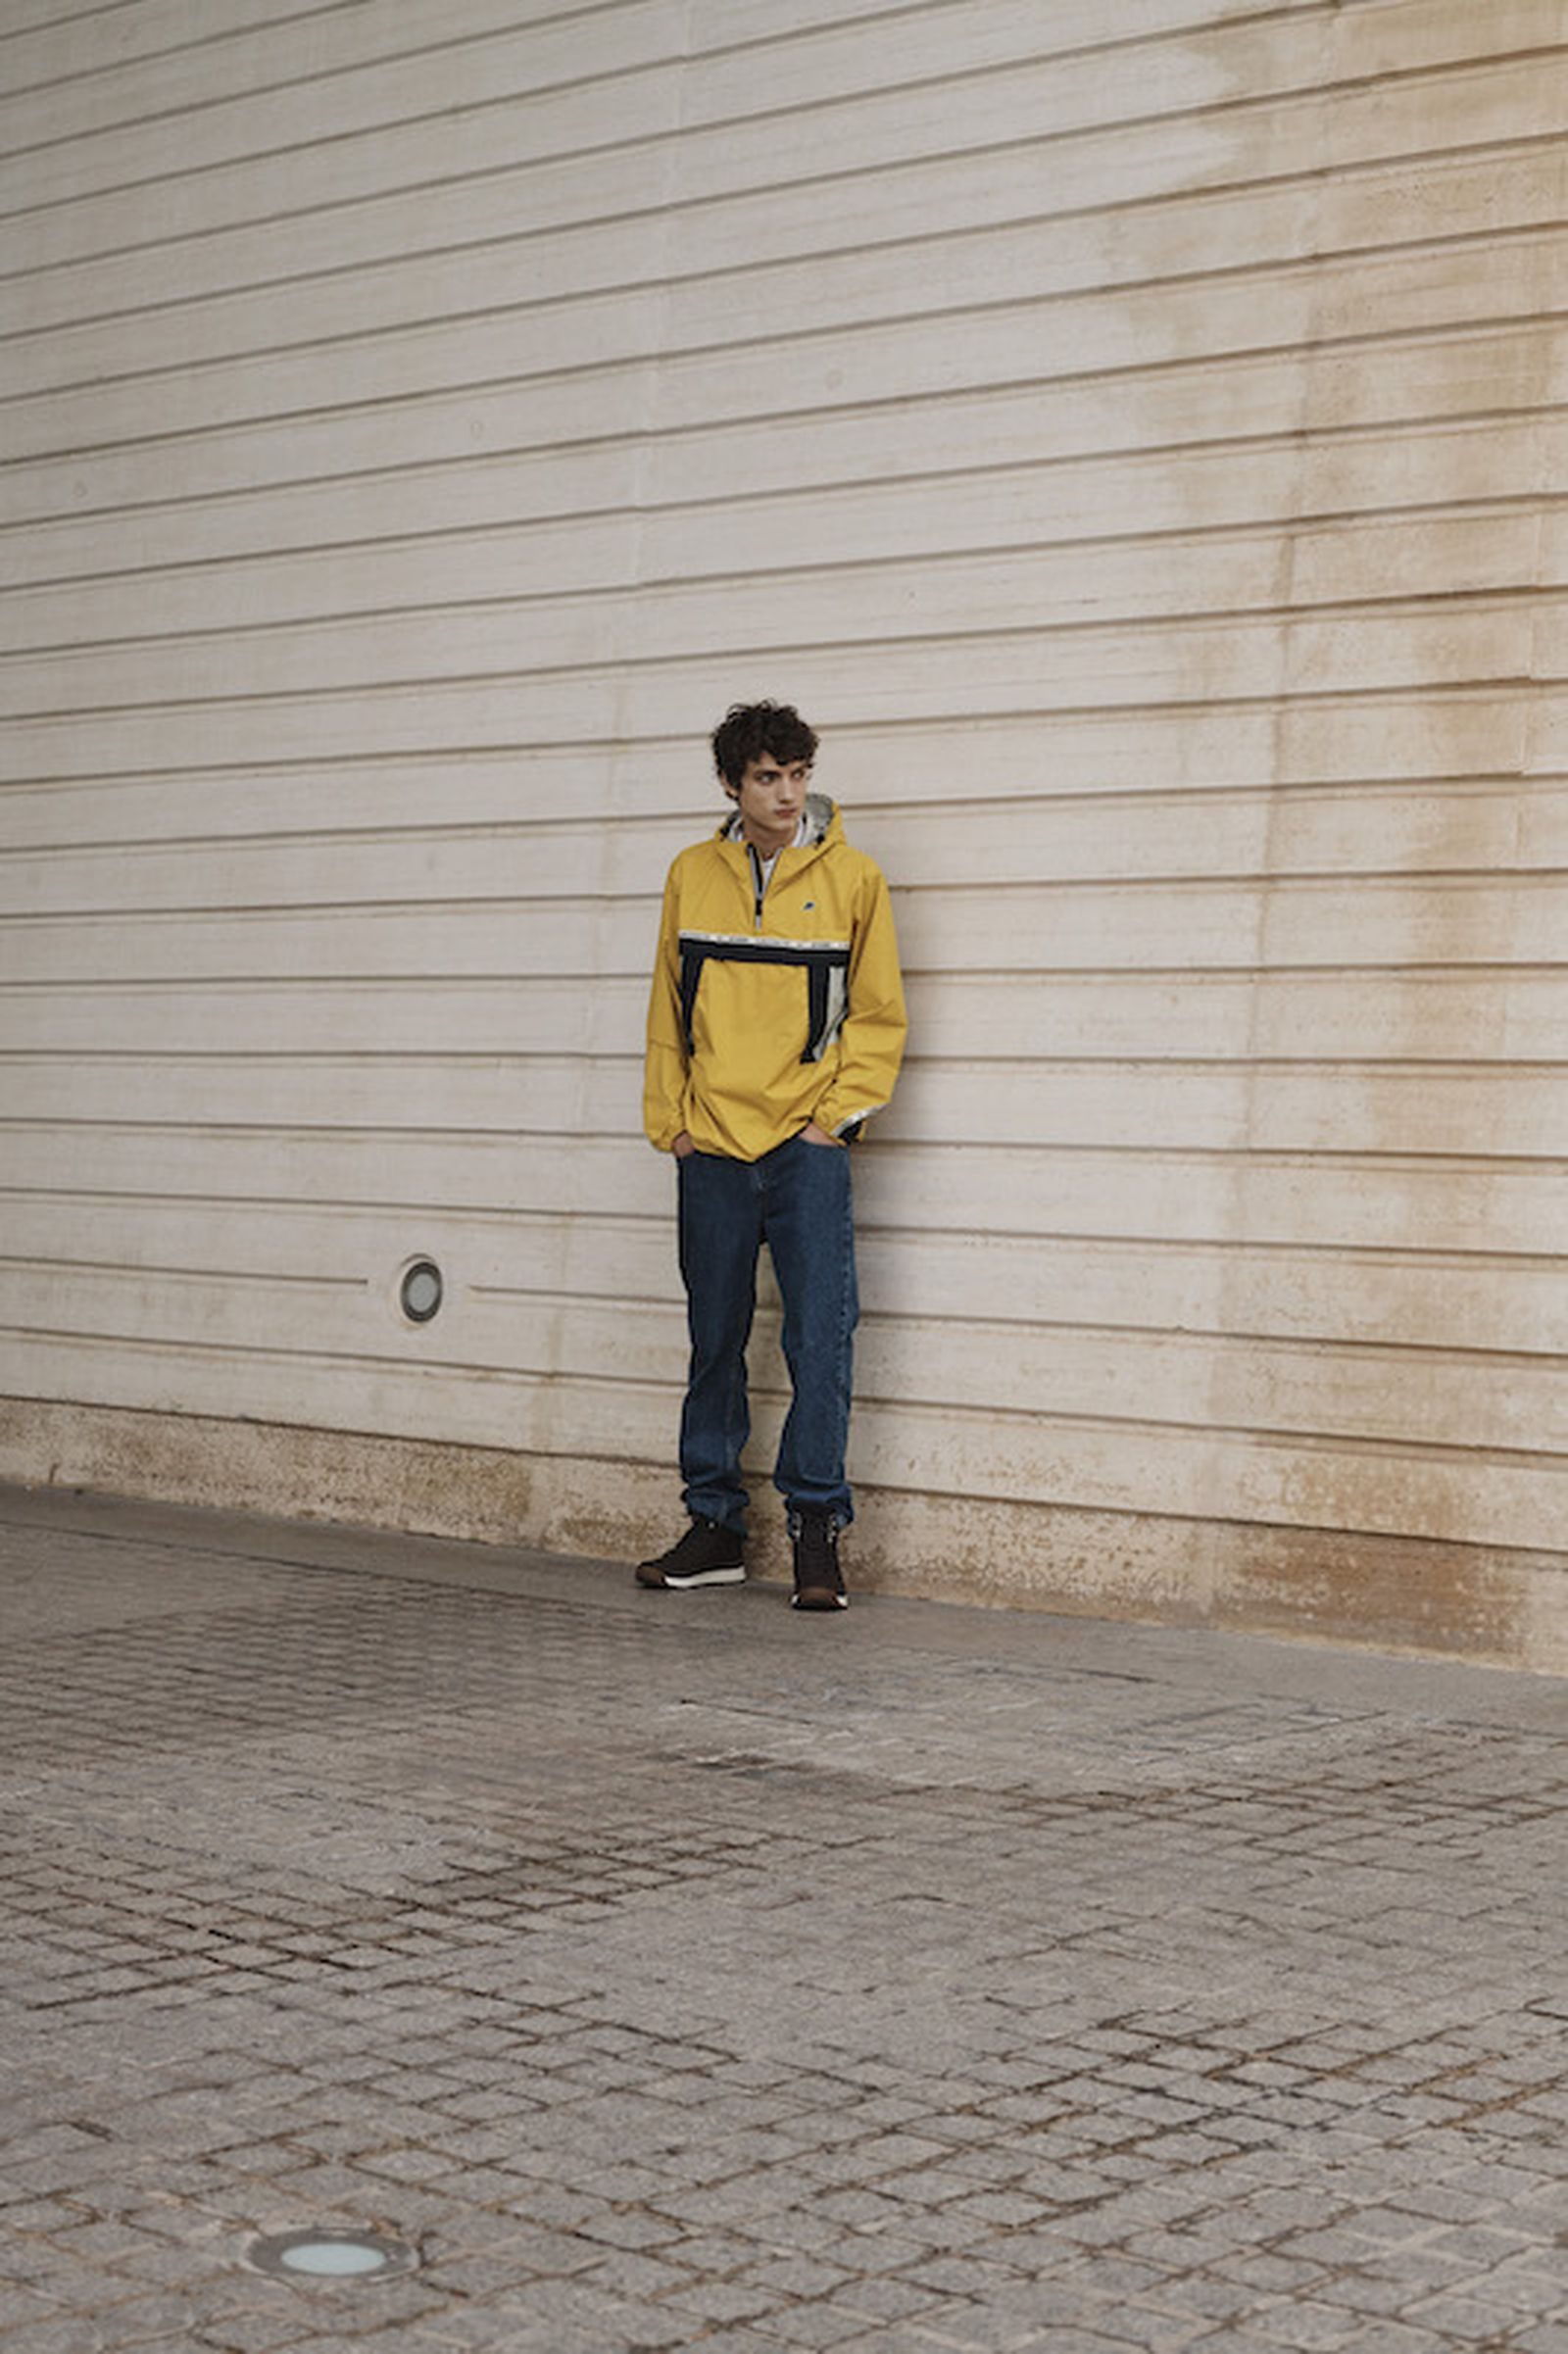 lacoste alpha industries collaboration gloverall k-way pyrenex